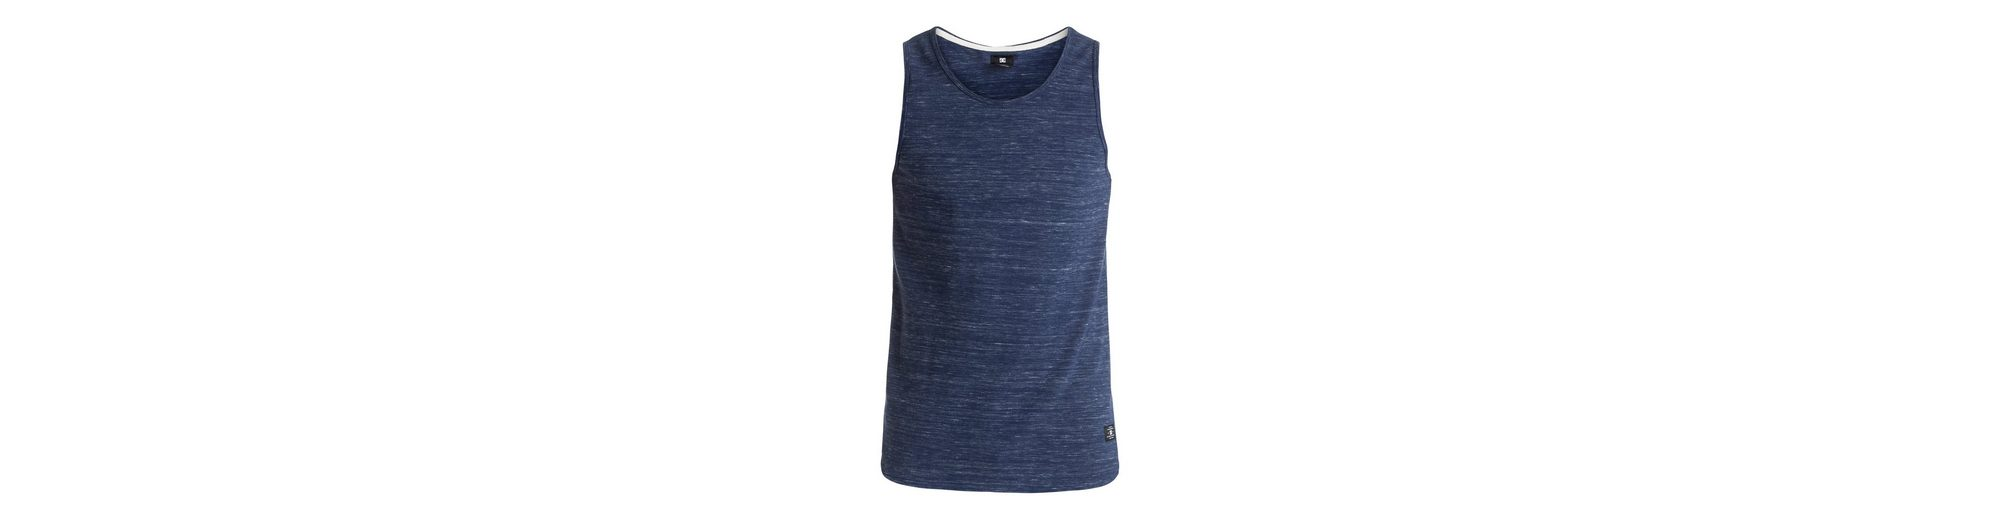 DC Shoes Top Seeley - Top